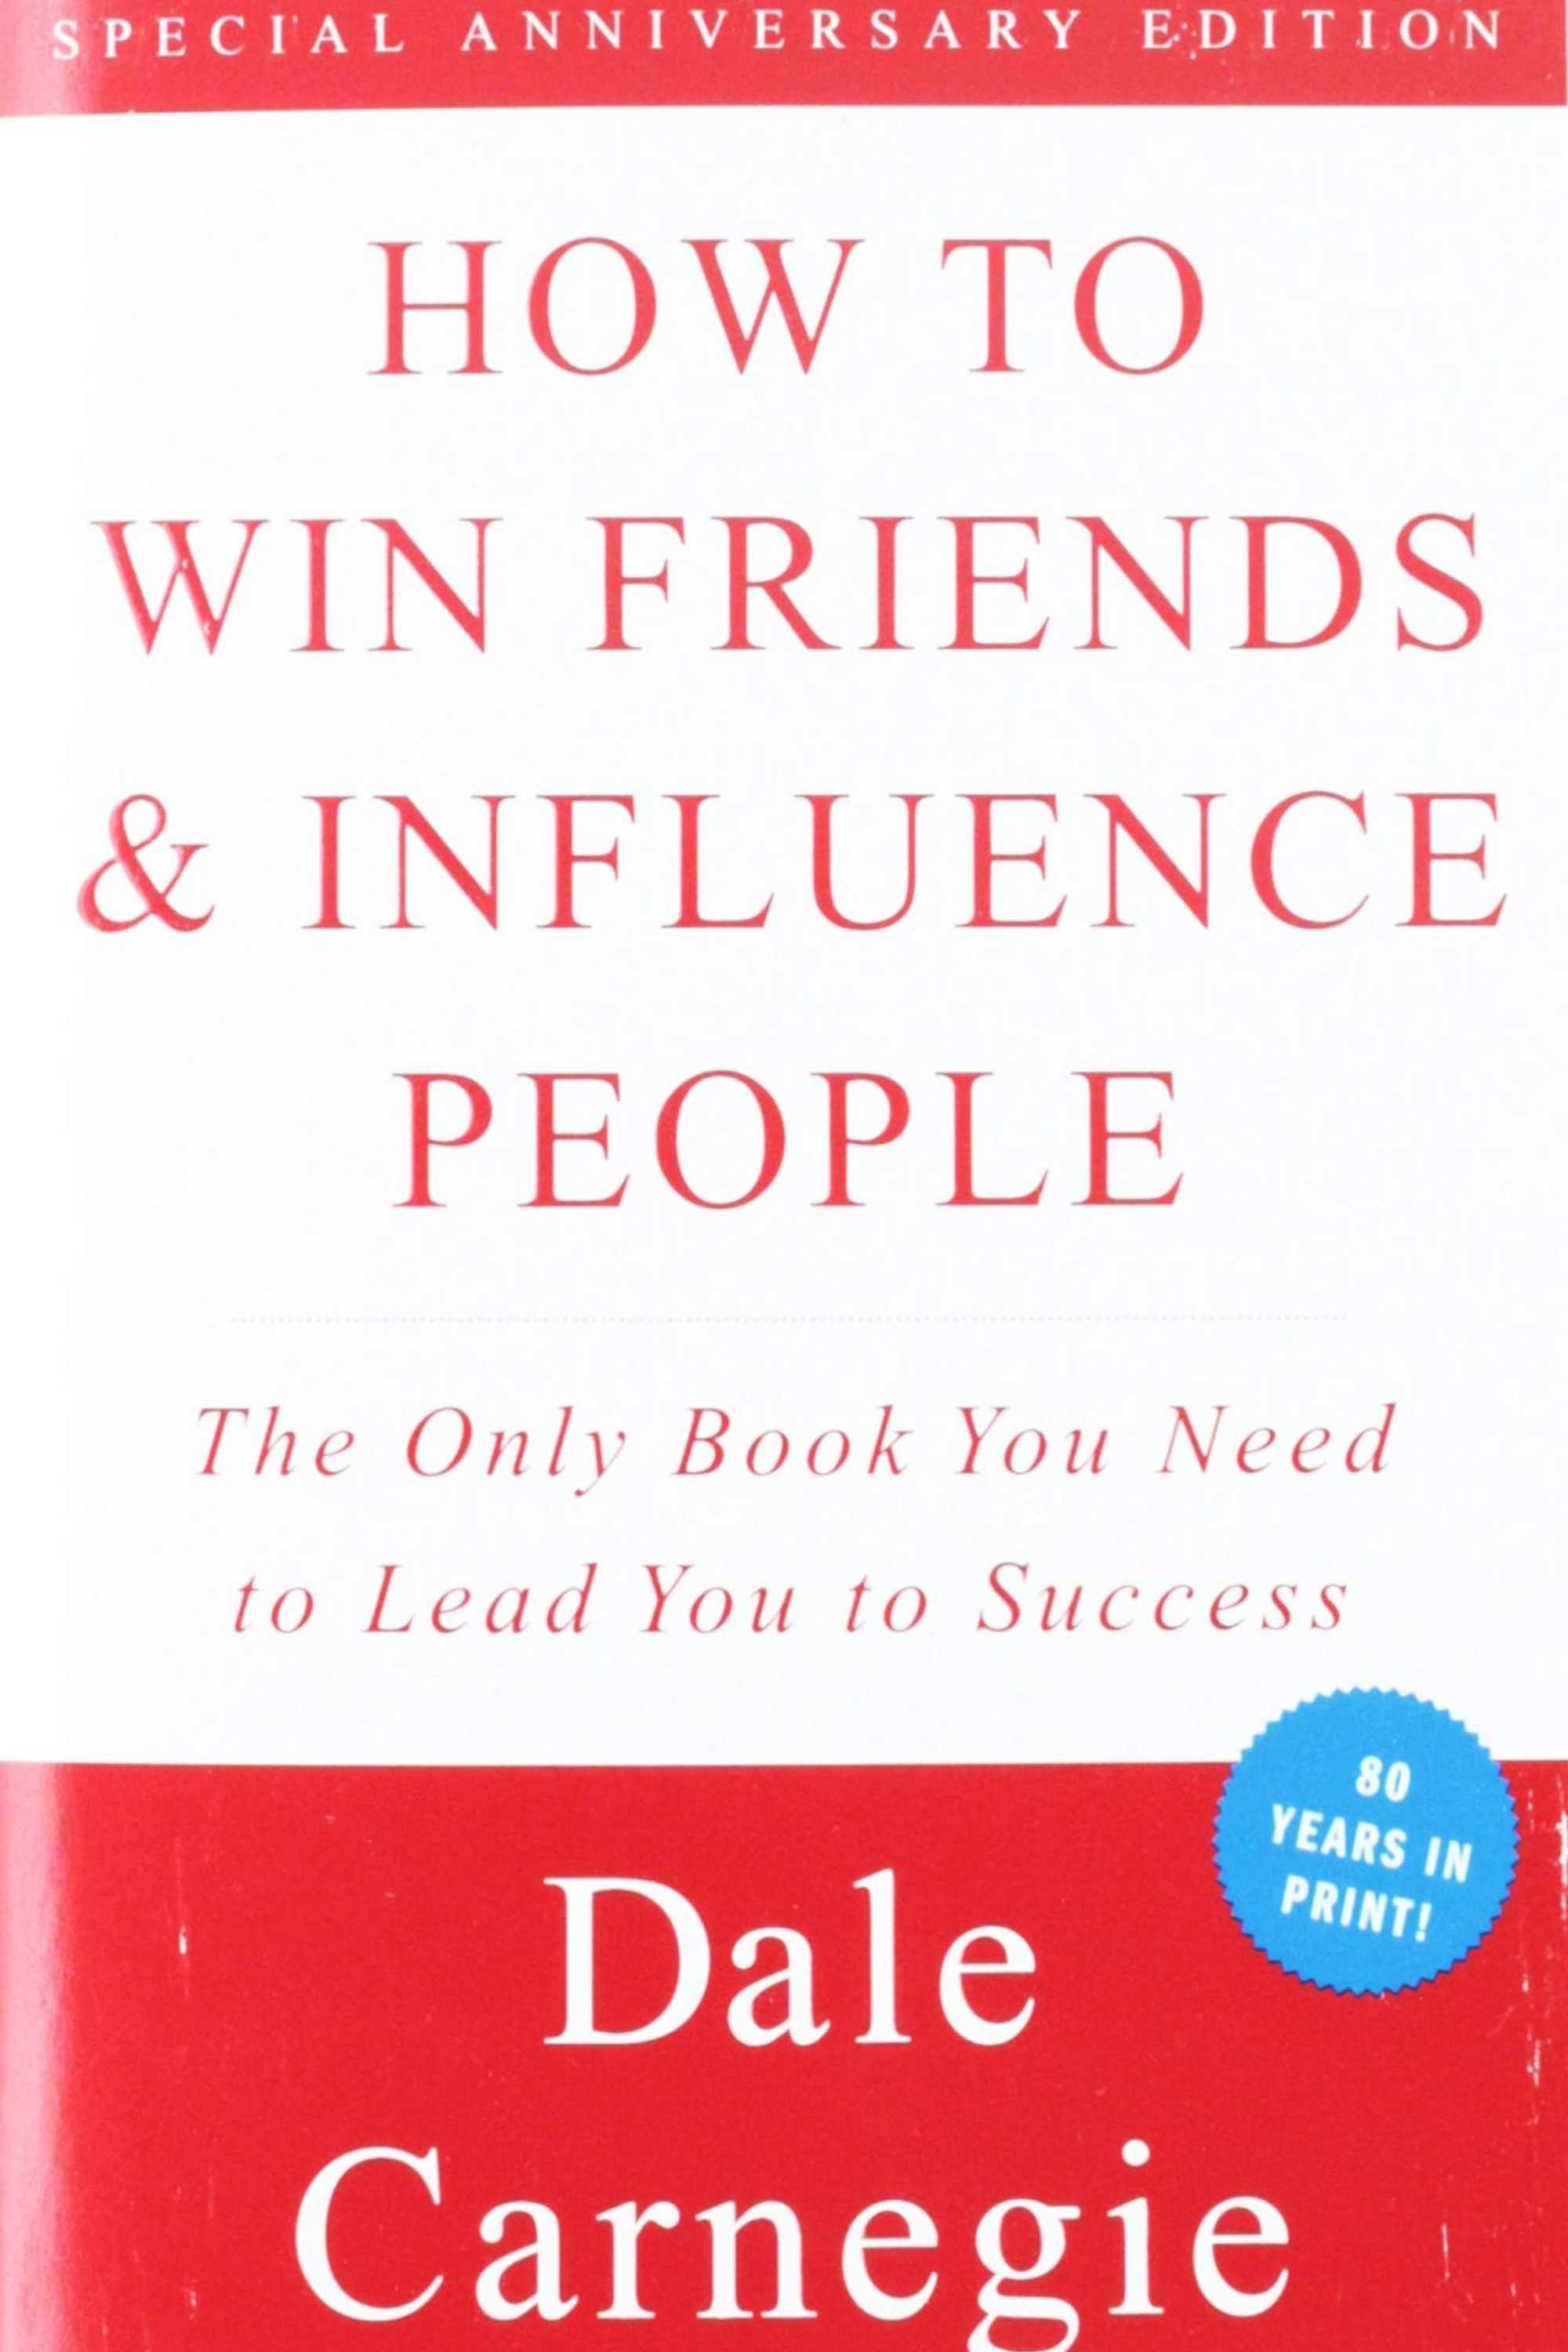 How to Win Friends & Influence People Dale Carnegie Courtney Elmer.png